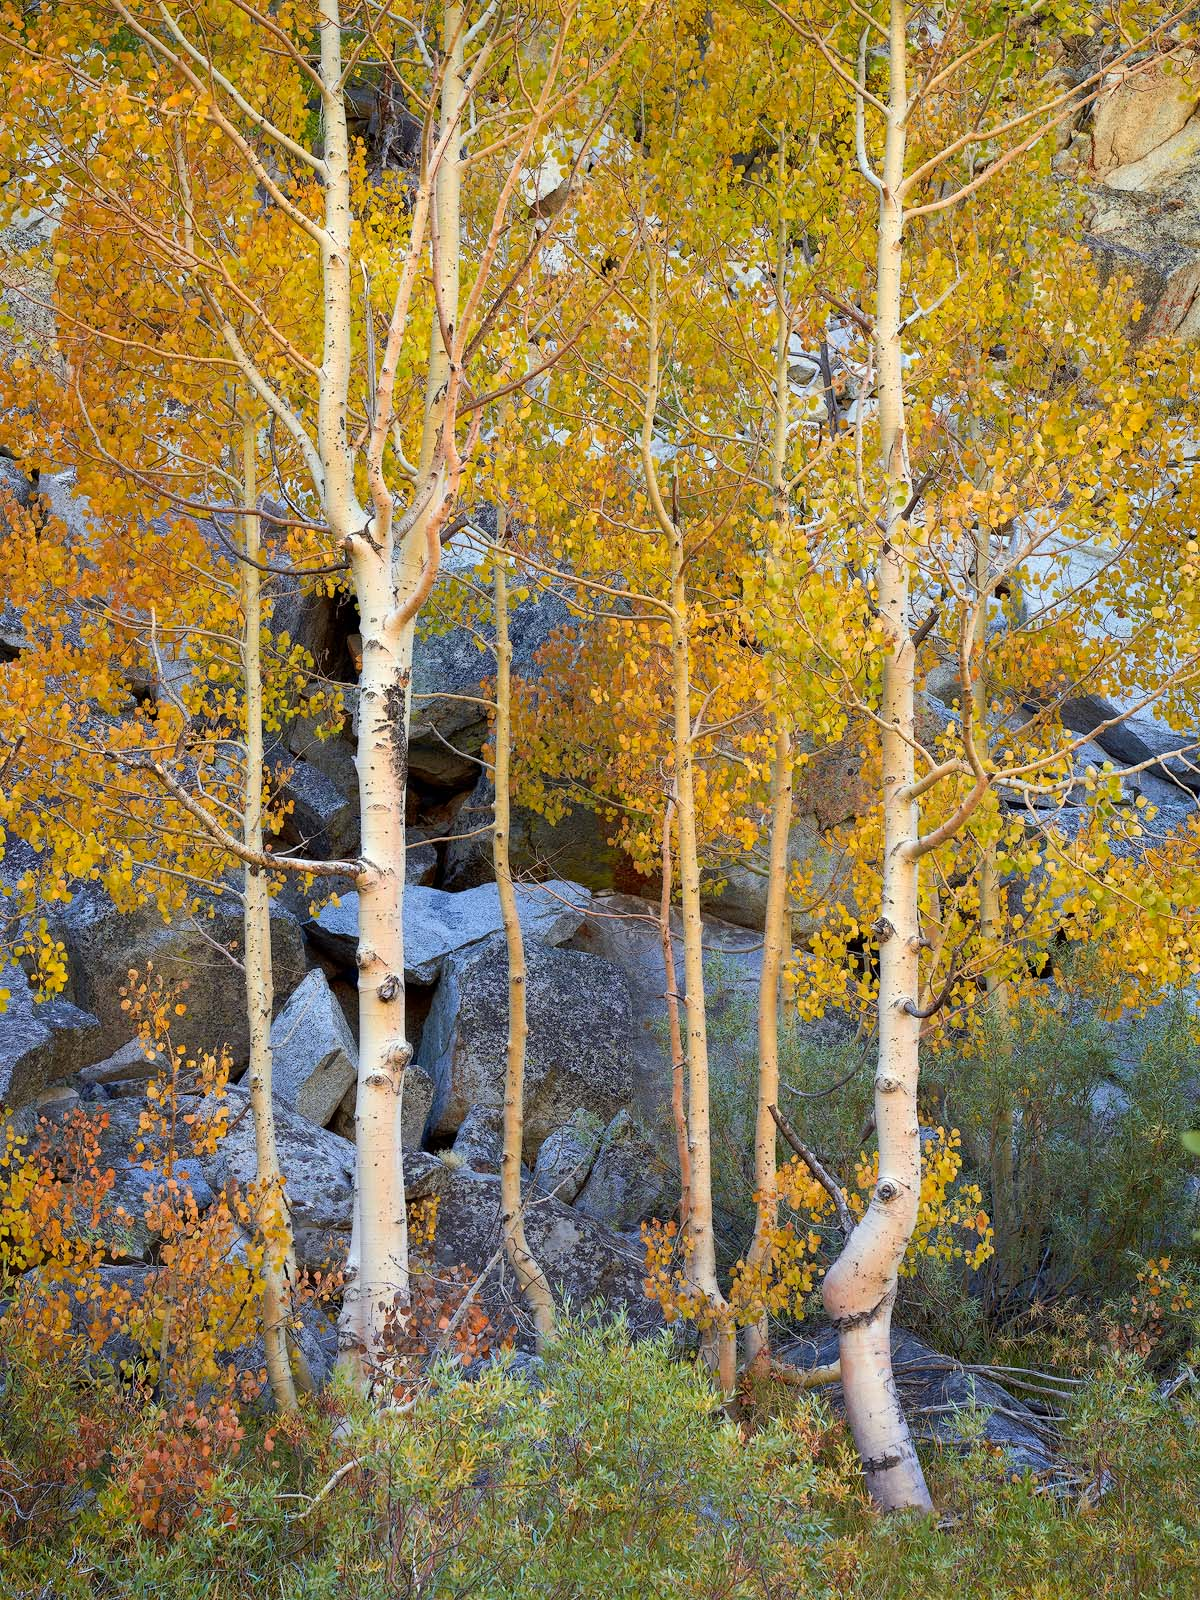 plants, tree, deciduous, aspens, WORLD REGIONS & COUNTRIES, North America, United States of America, California, Eastern Sierra Mountains, photo